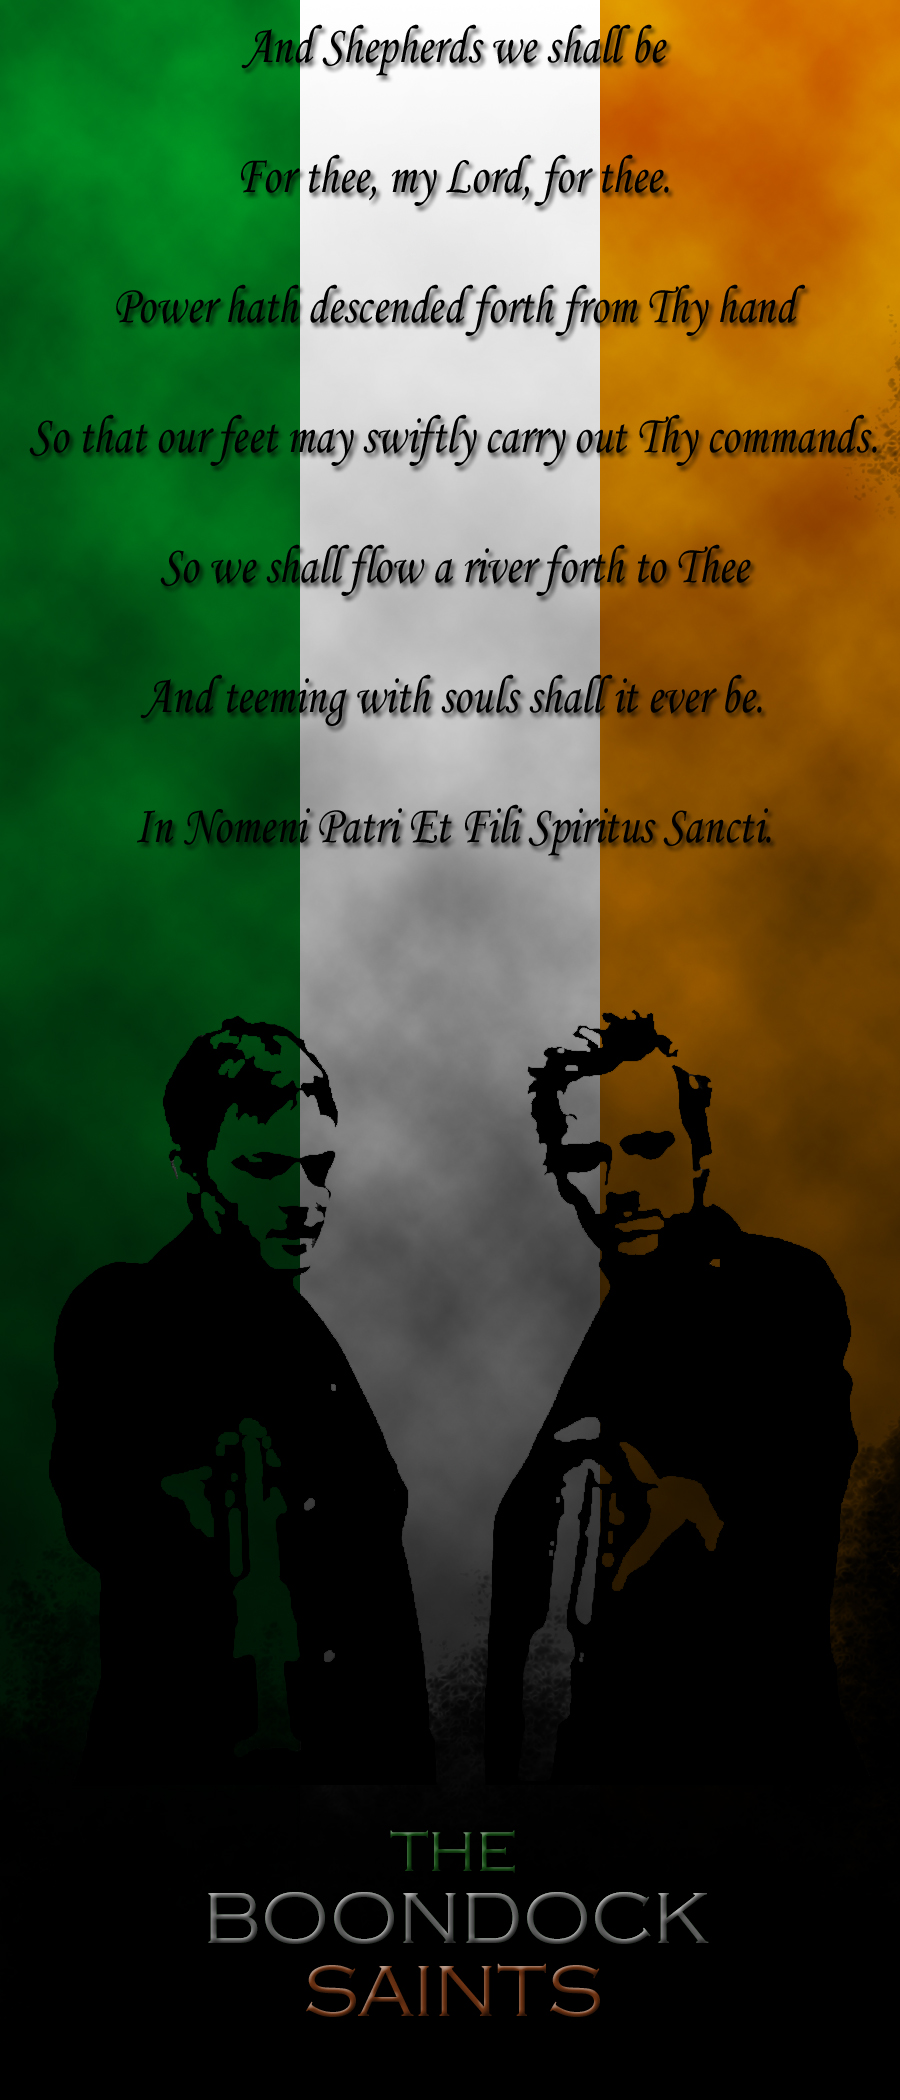 Anal cum powered by phpbb